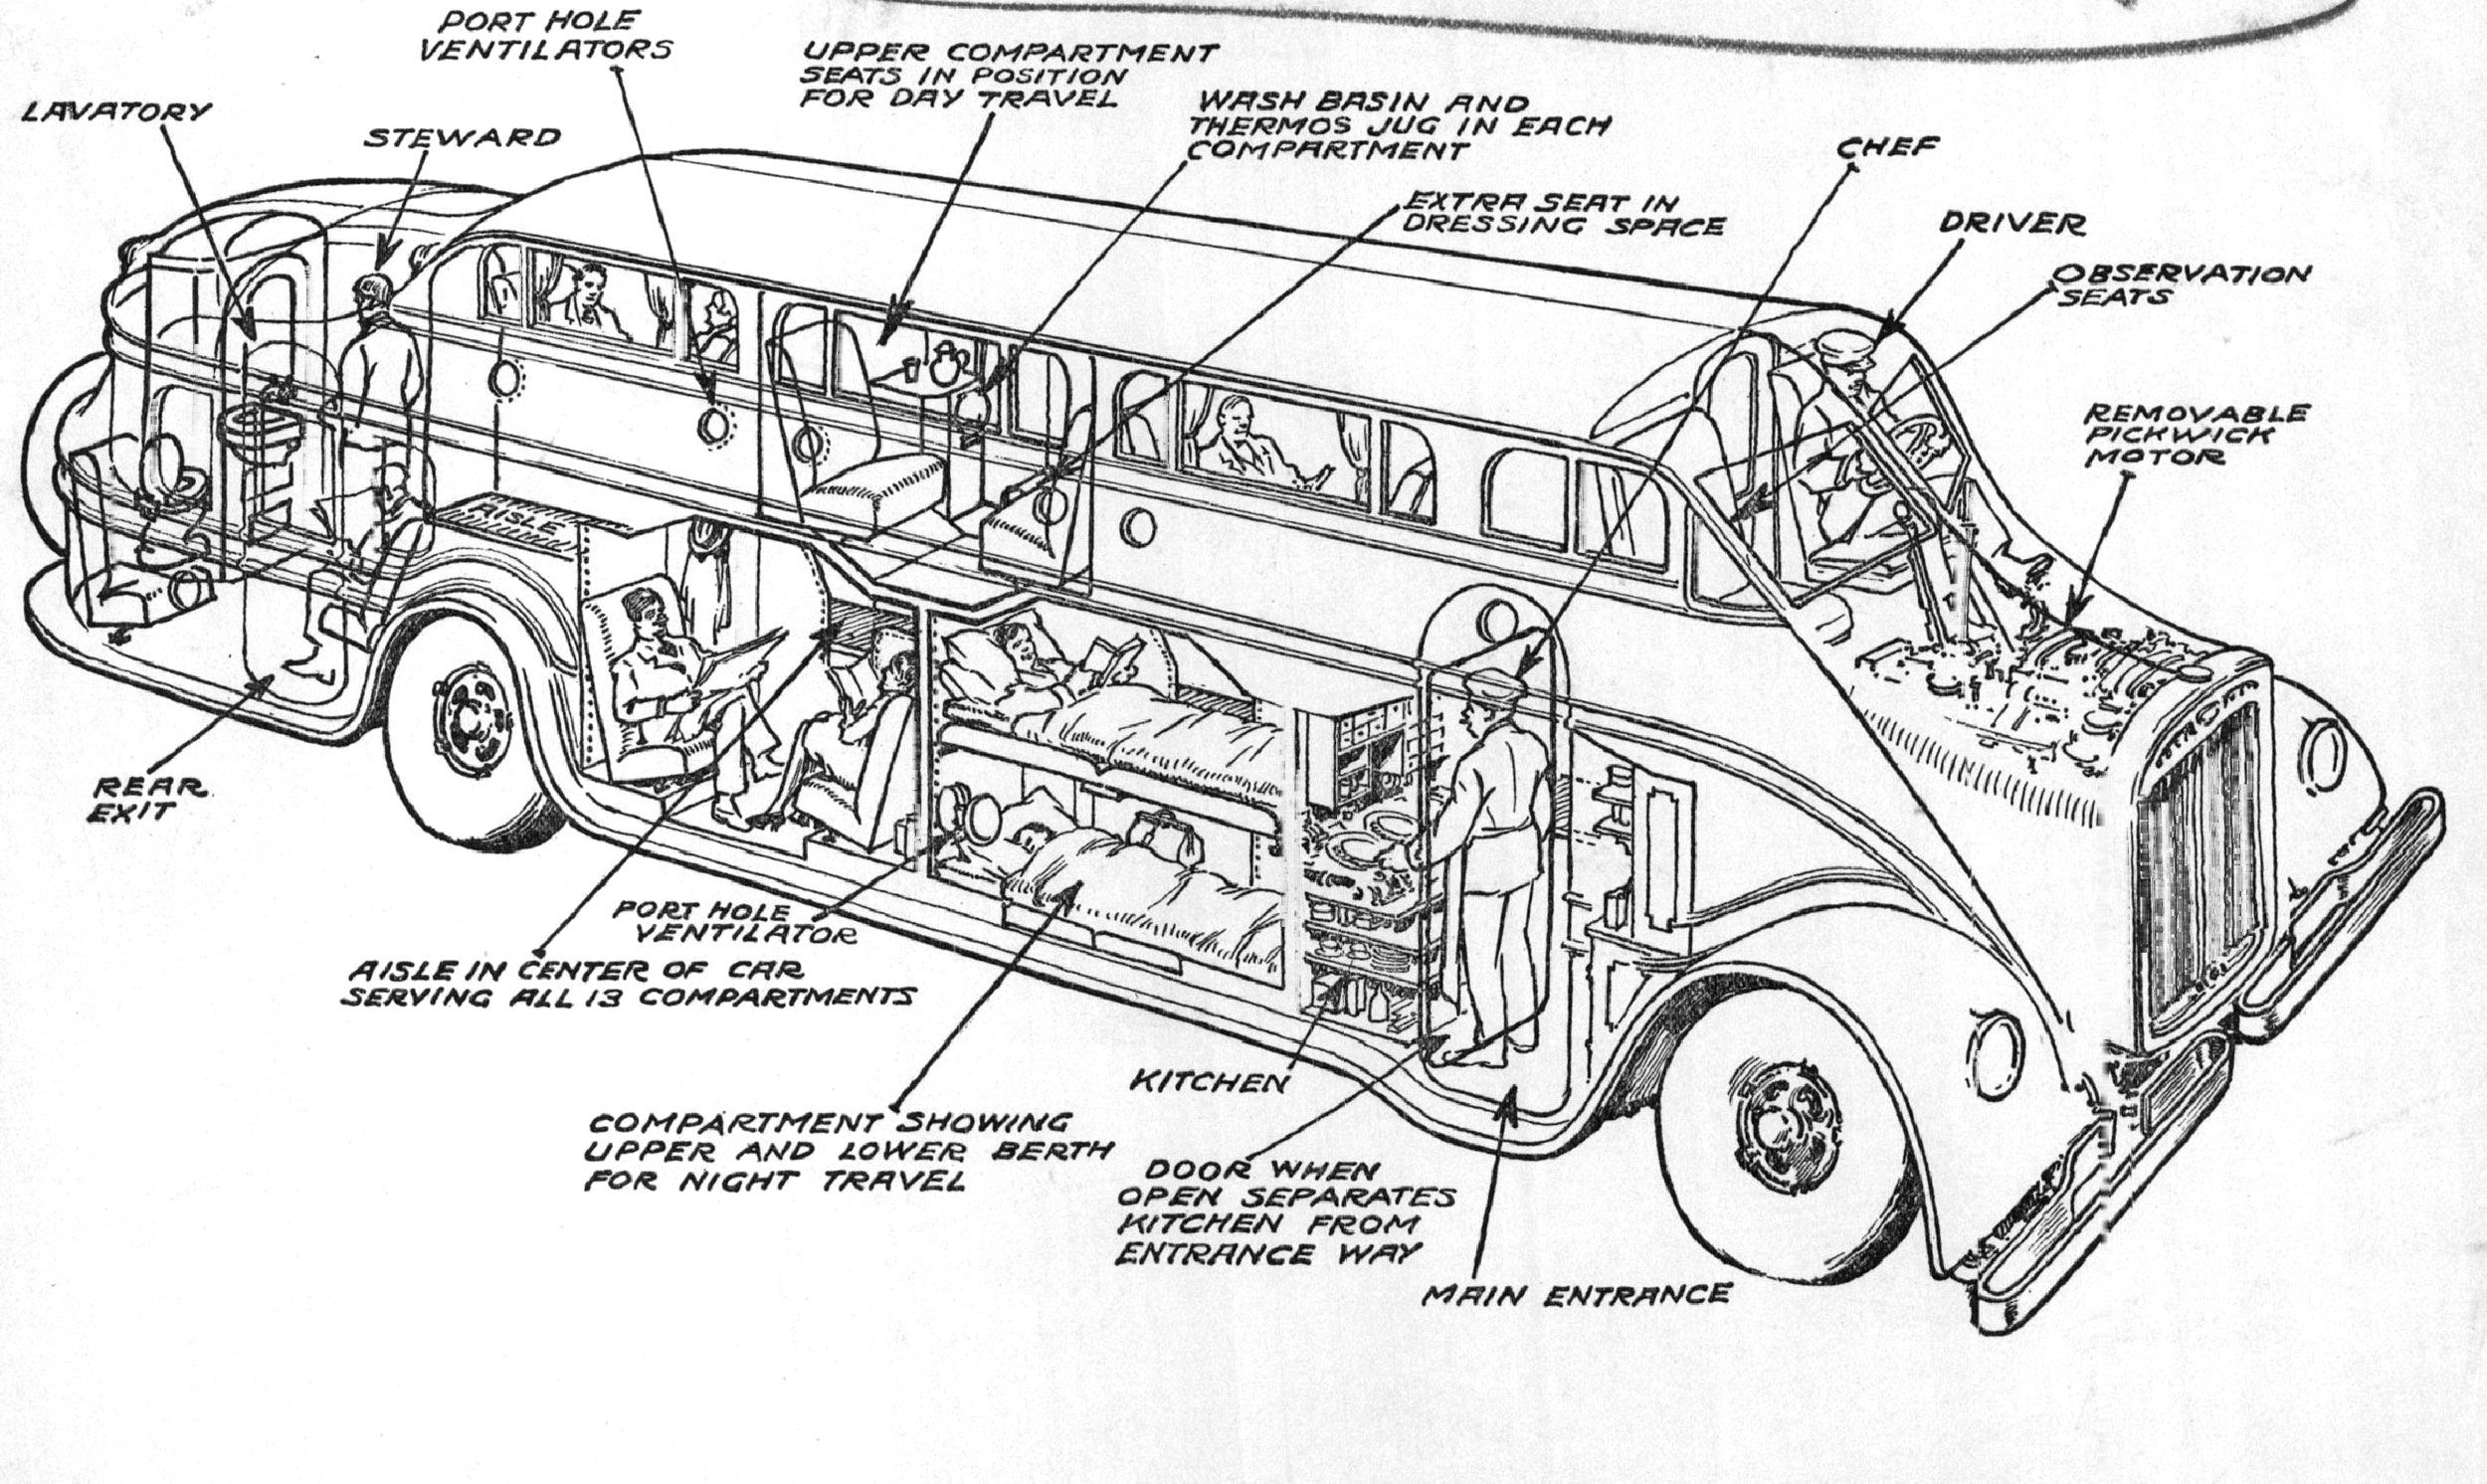 Pin by Traci Dean on cdl | Trucks, Engineering, Vehicles